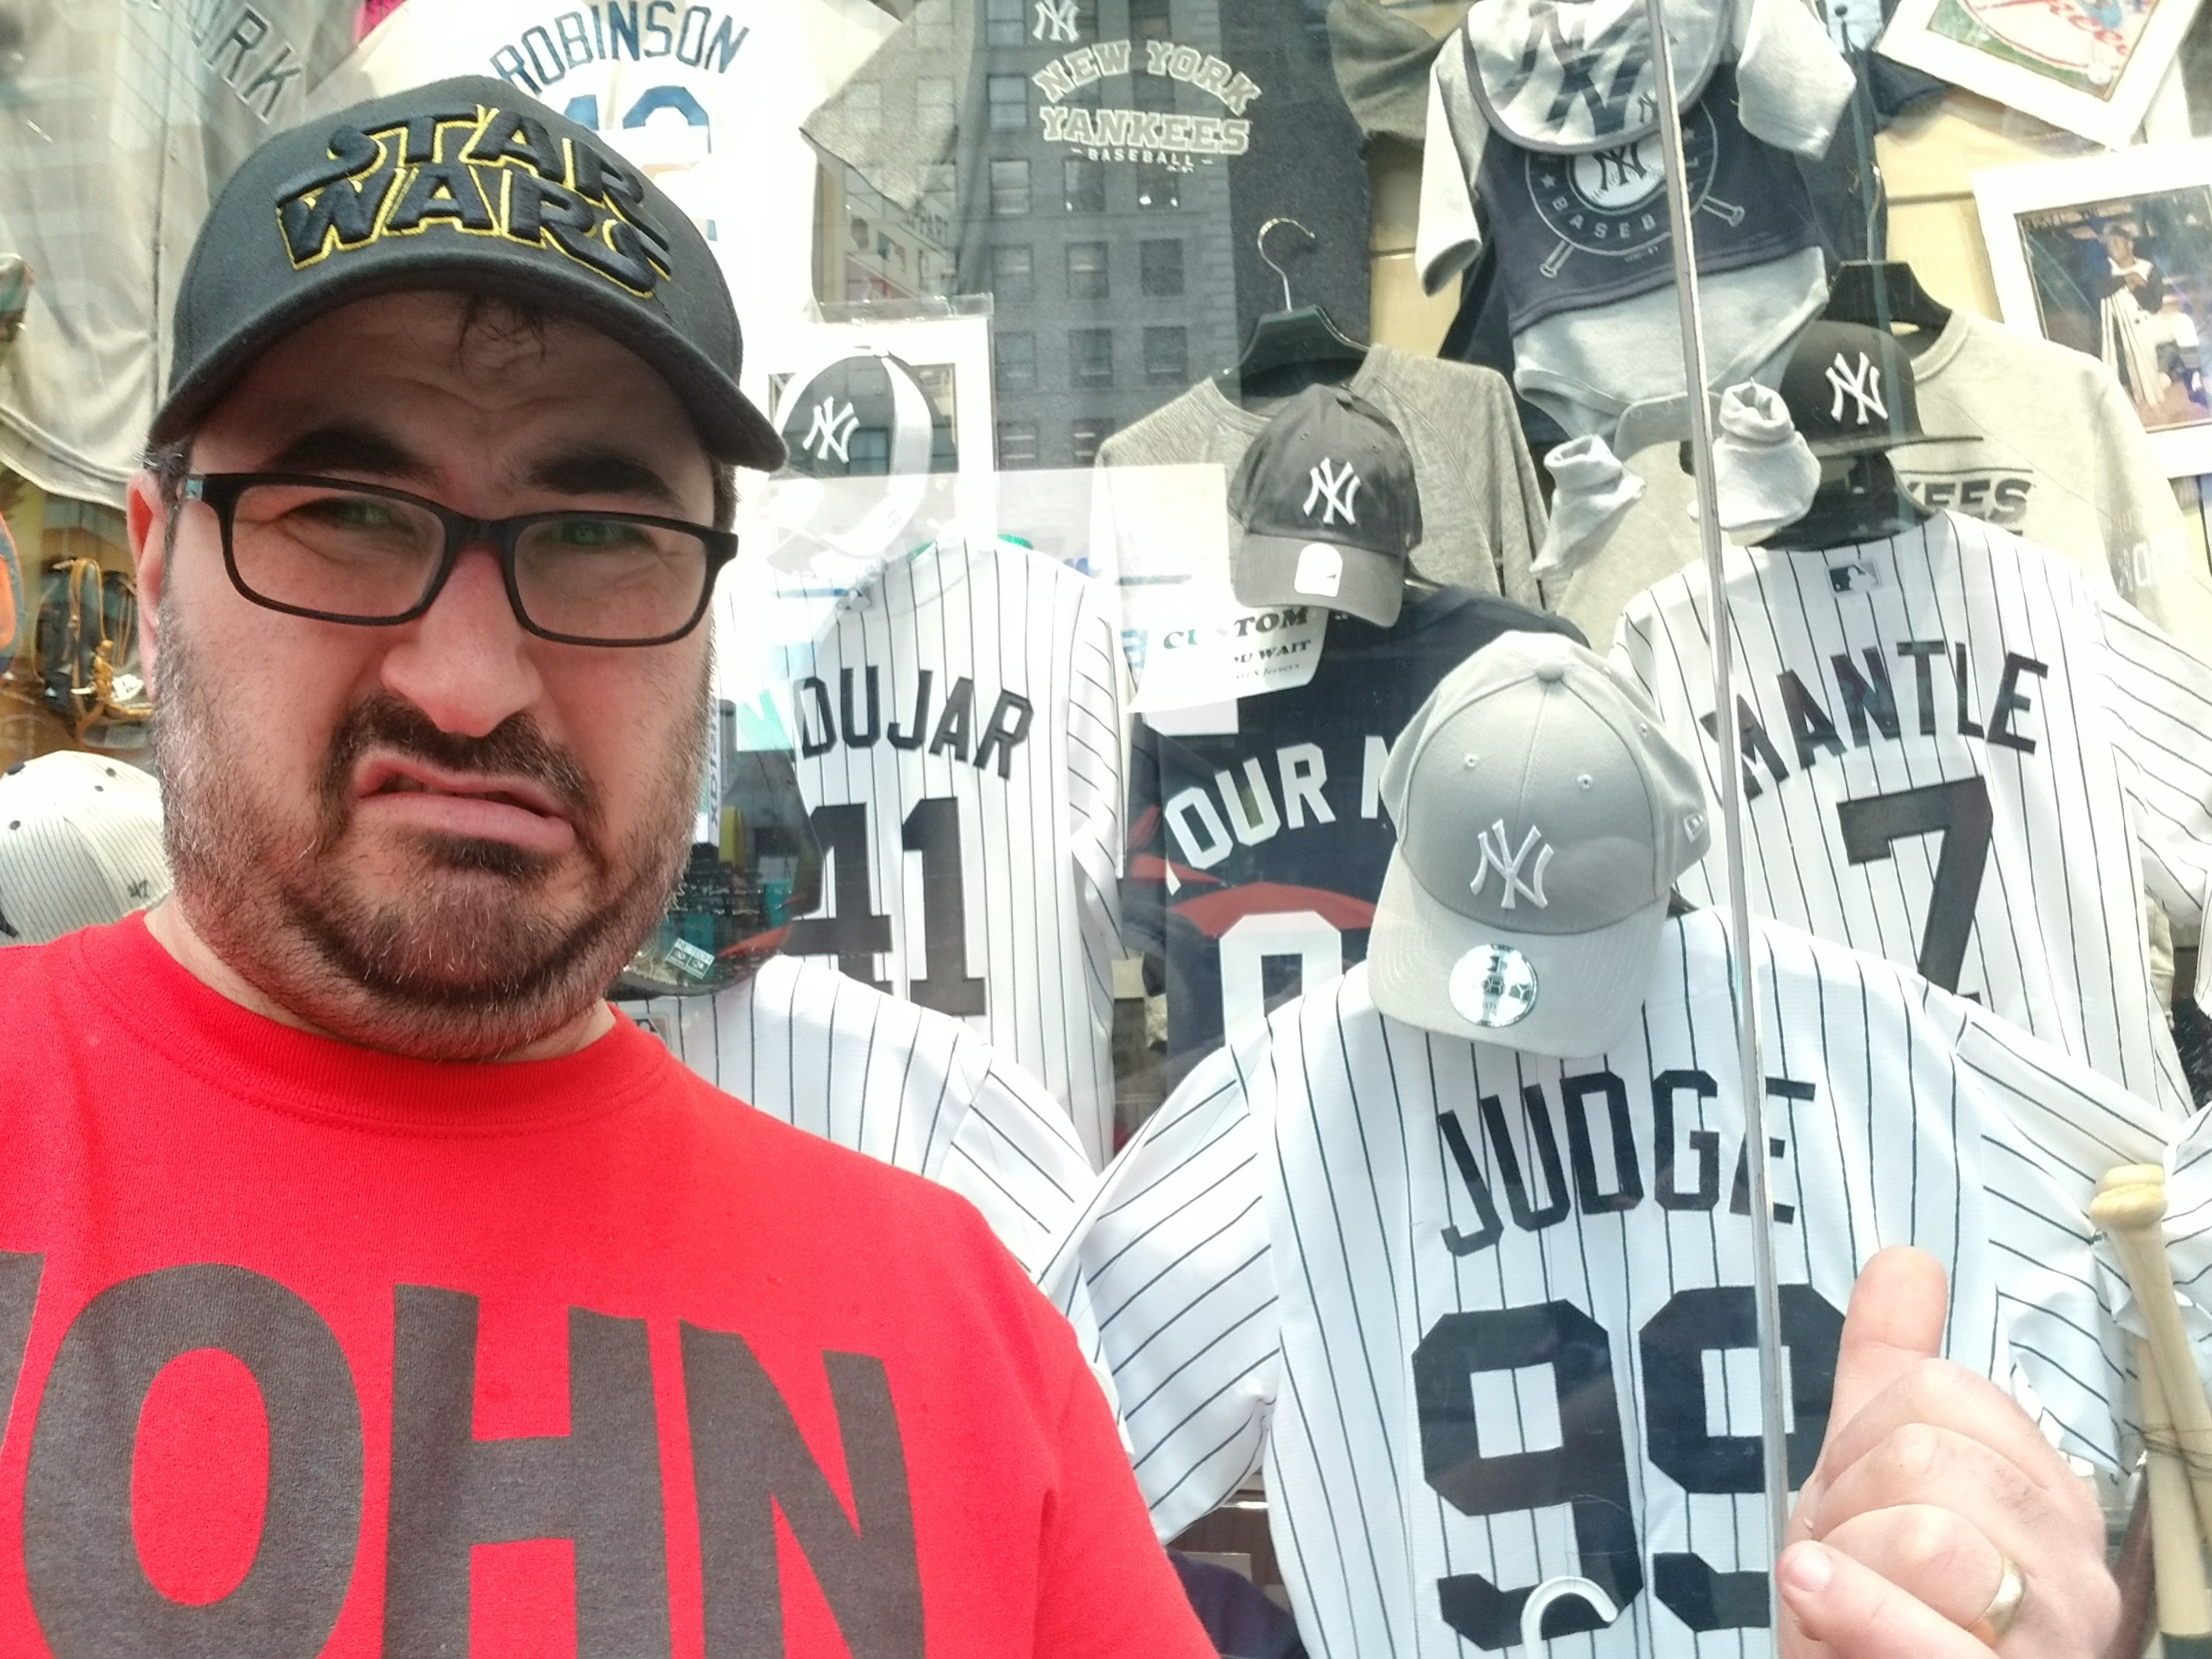 Ew, Yankees stuff! Gross.